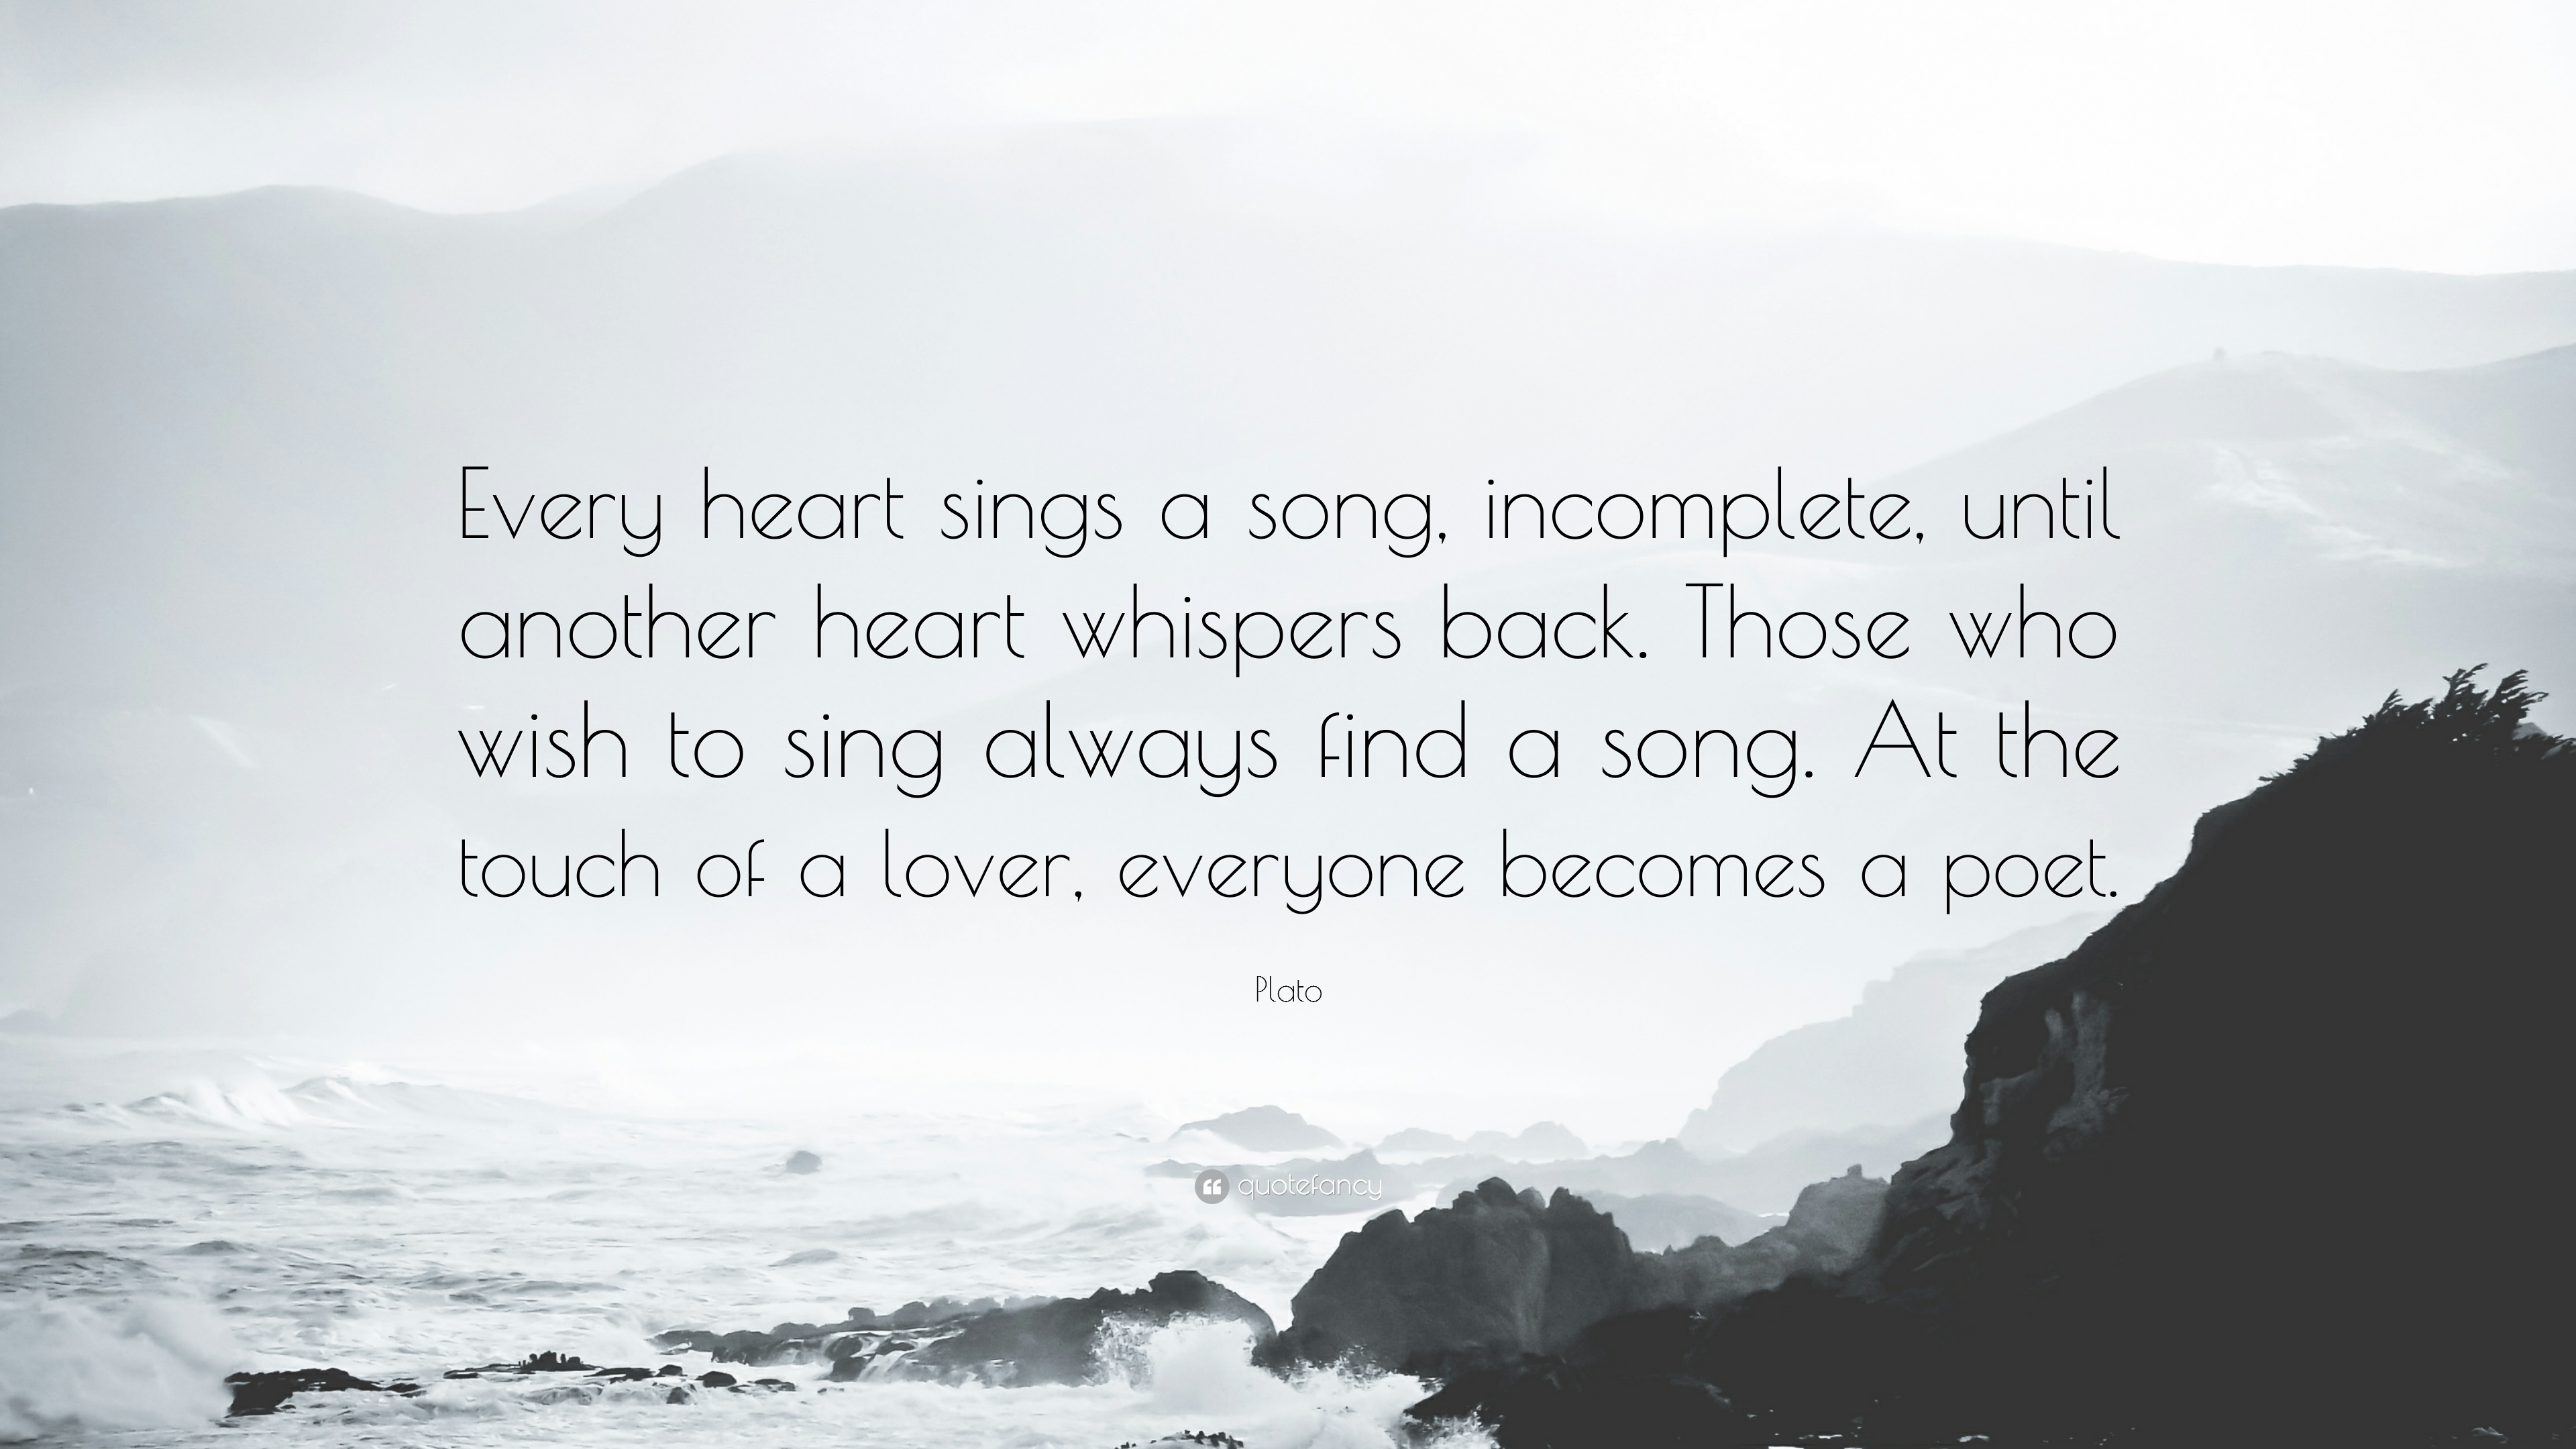 Romantic Quotes Every Heart Sings A Song Incomplete Until Another Whispers